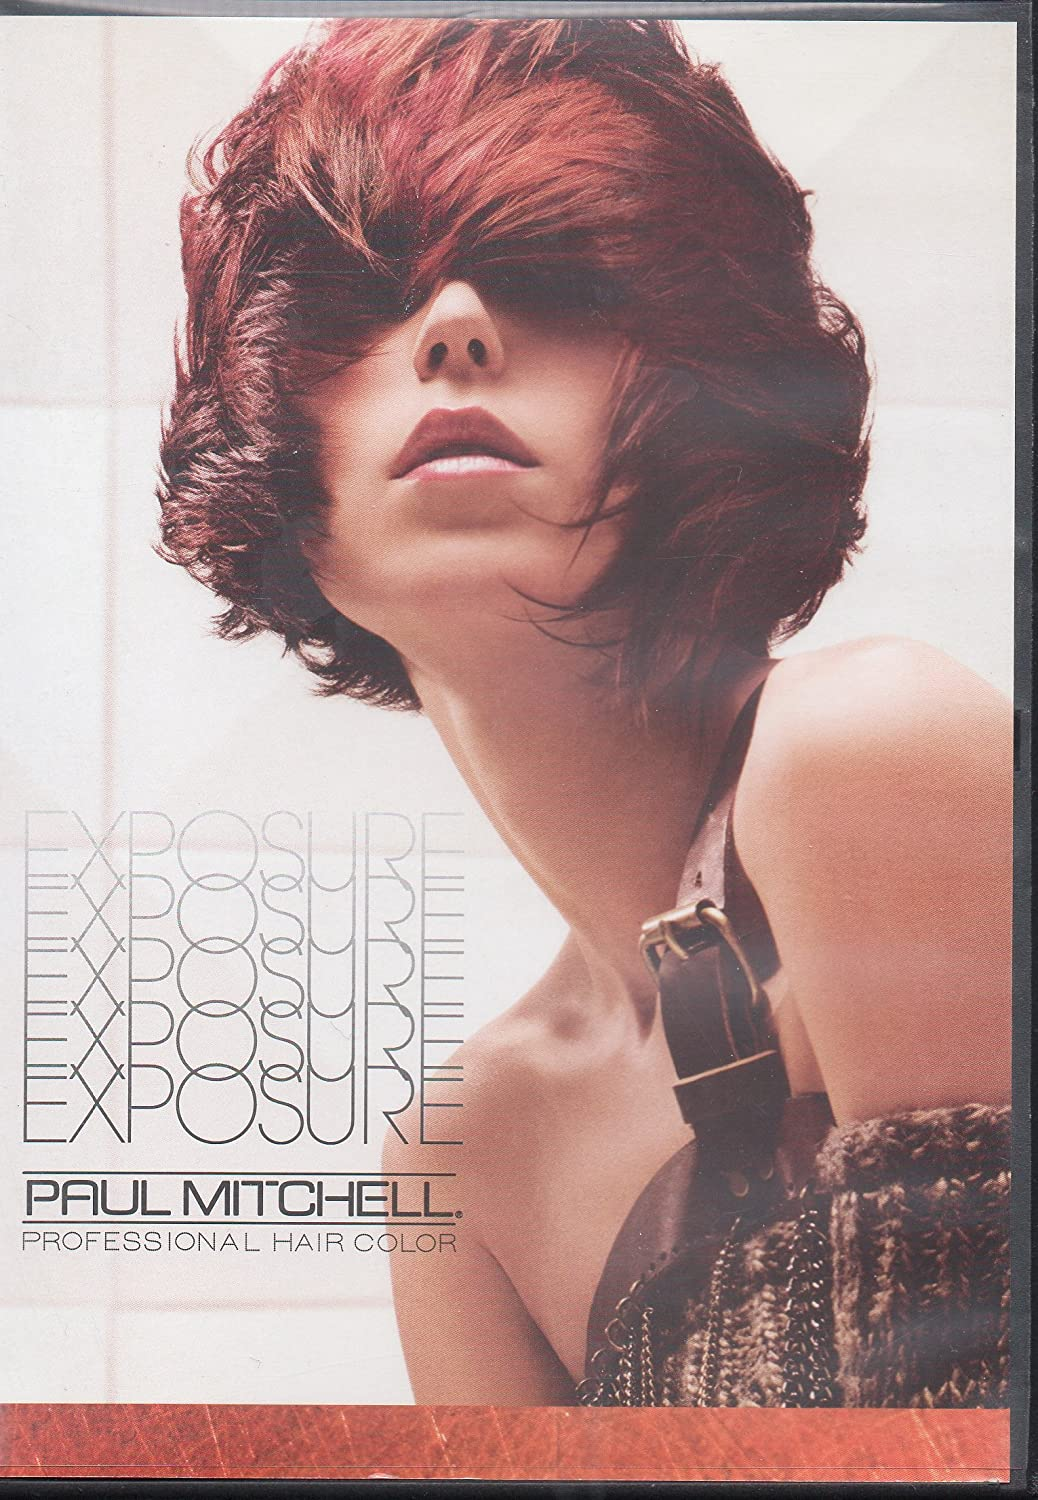 Buy Paul Mitchell Exposure Educational Hair Cutting Dvd Online at